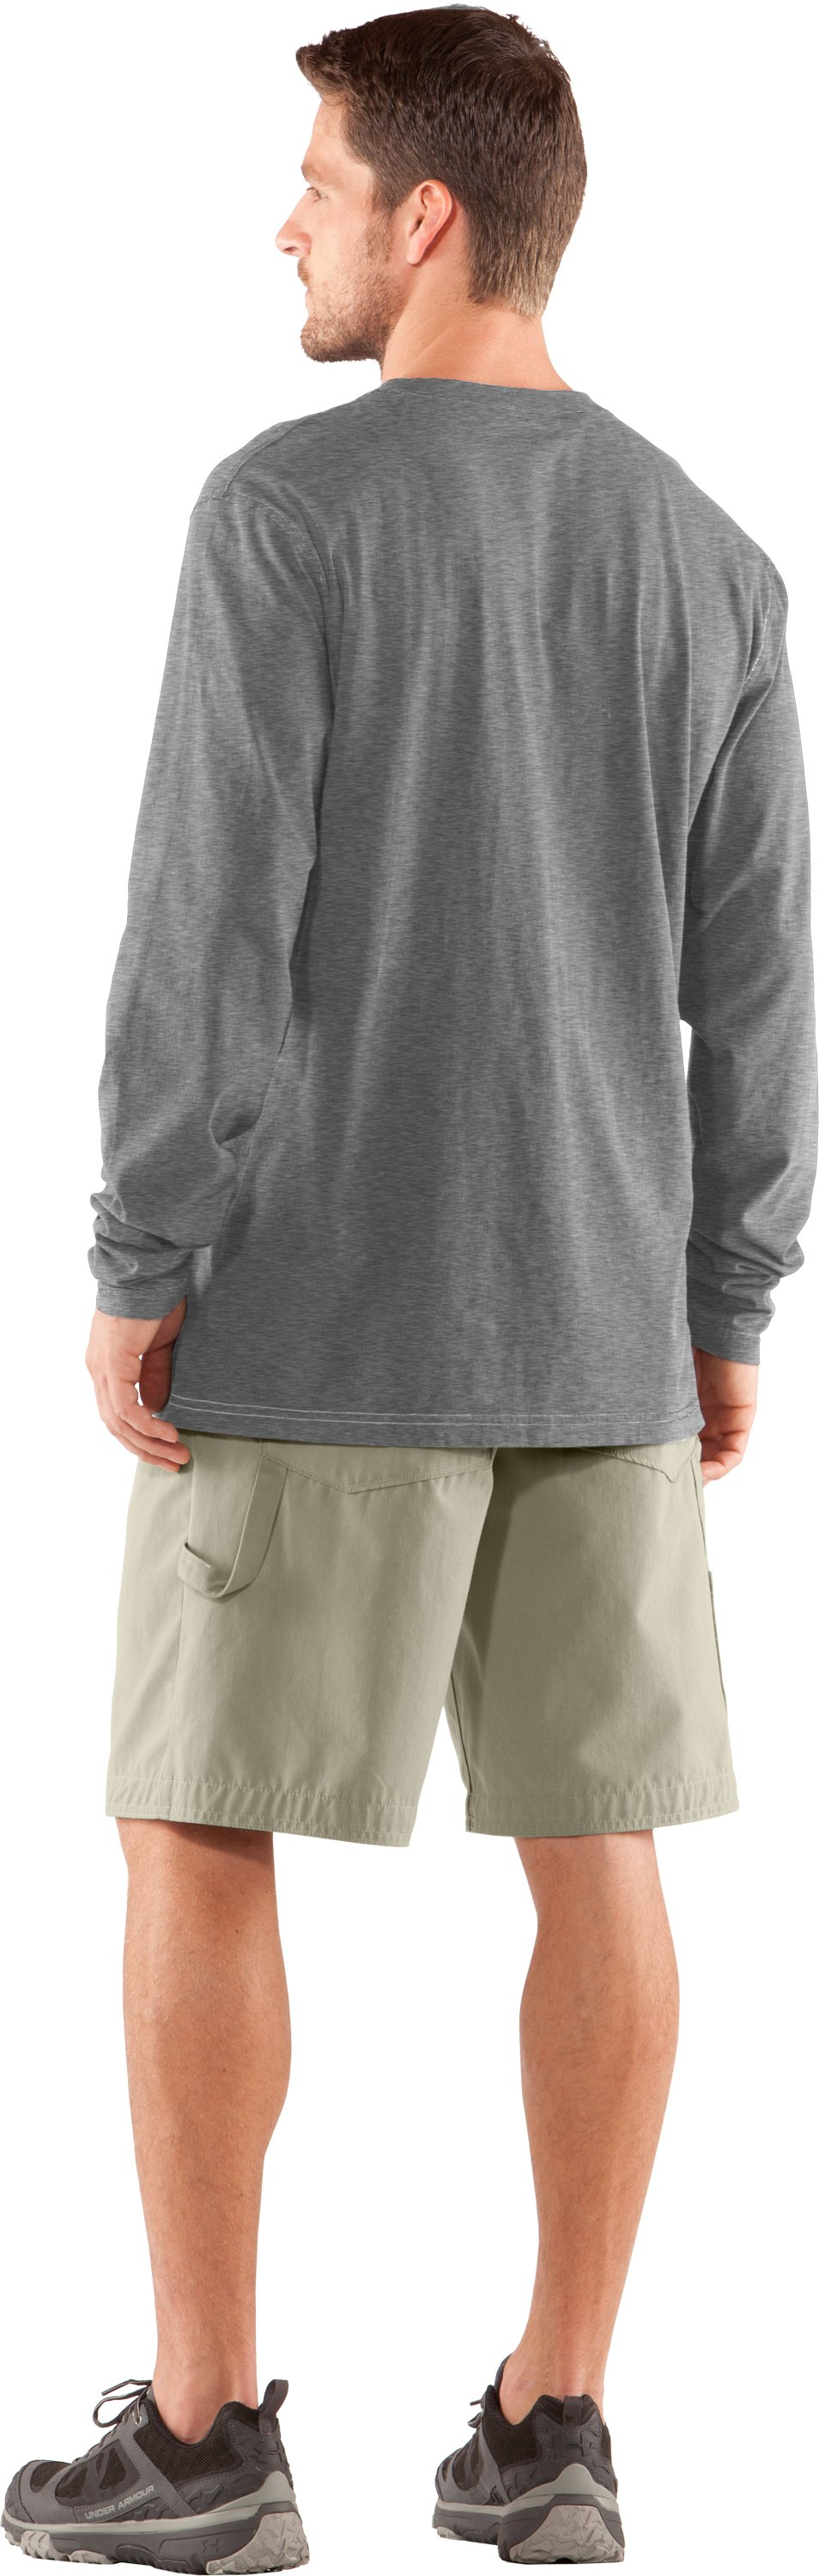 Men's Charged Cotton® Pocket Long Sleeve T-Shirt, True Gray Heather, Back